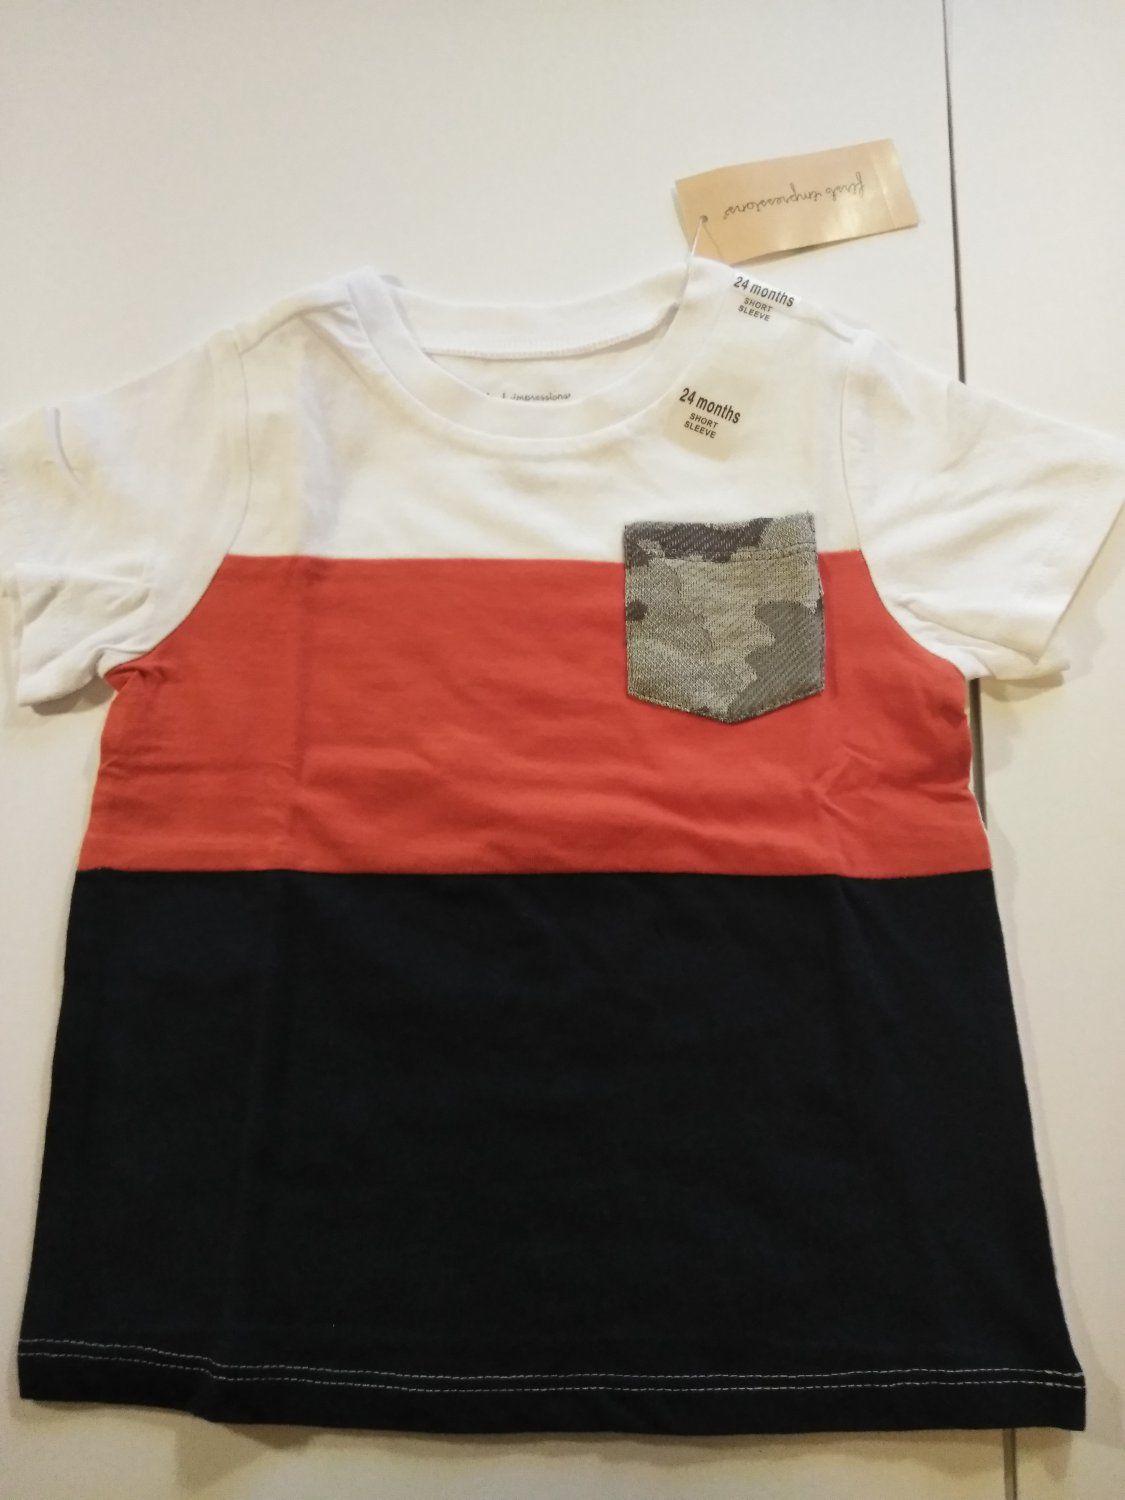 First Impression Baby's Multi Color Short Sleeve Tee Shirt Sizes - 3 - 24 Months